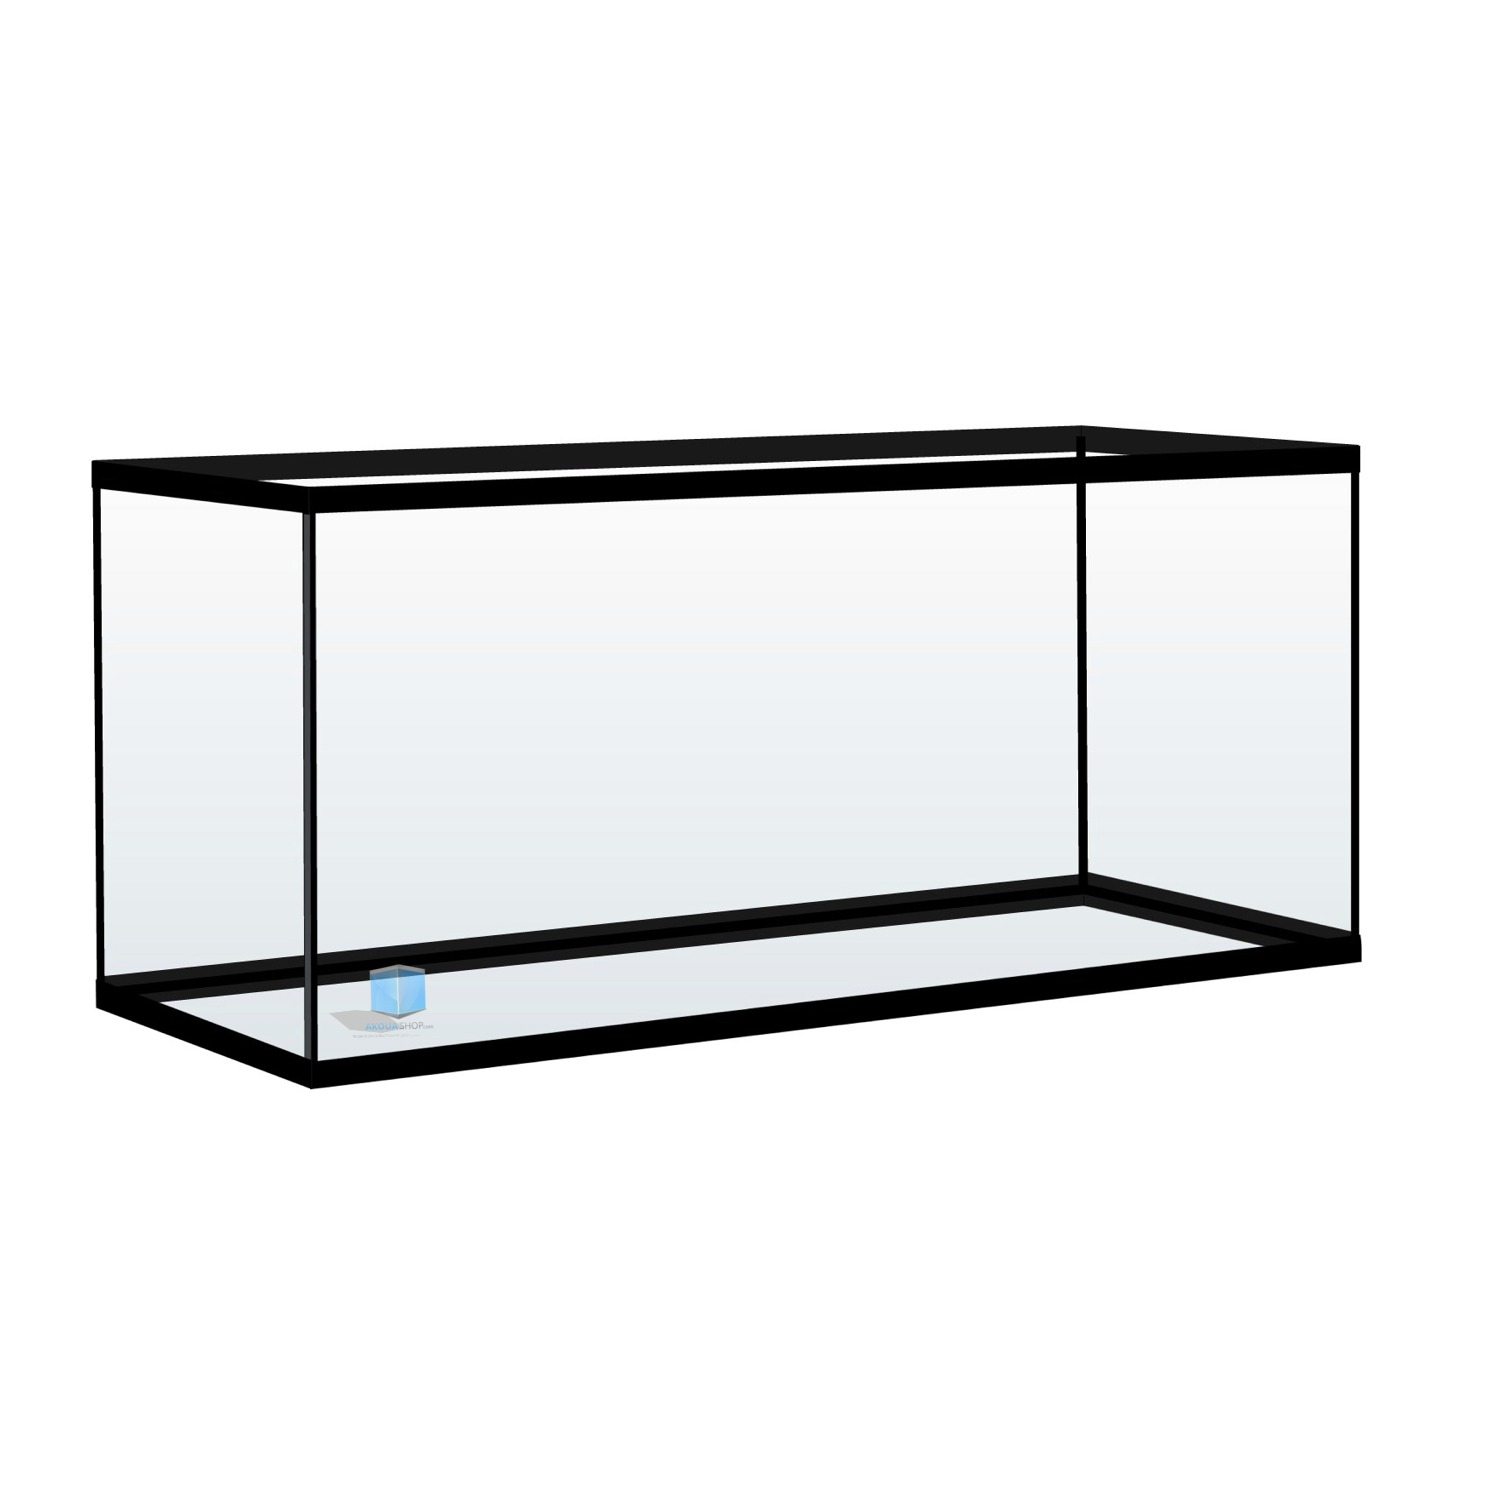 cuve d 39 aquarium nue 120l dim 100 x 30 x 40 cm en vente. Black Bedroom Furniture Sets. Home Design Ideas